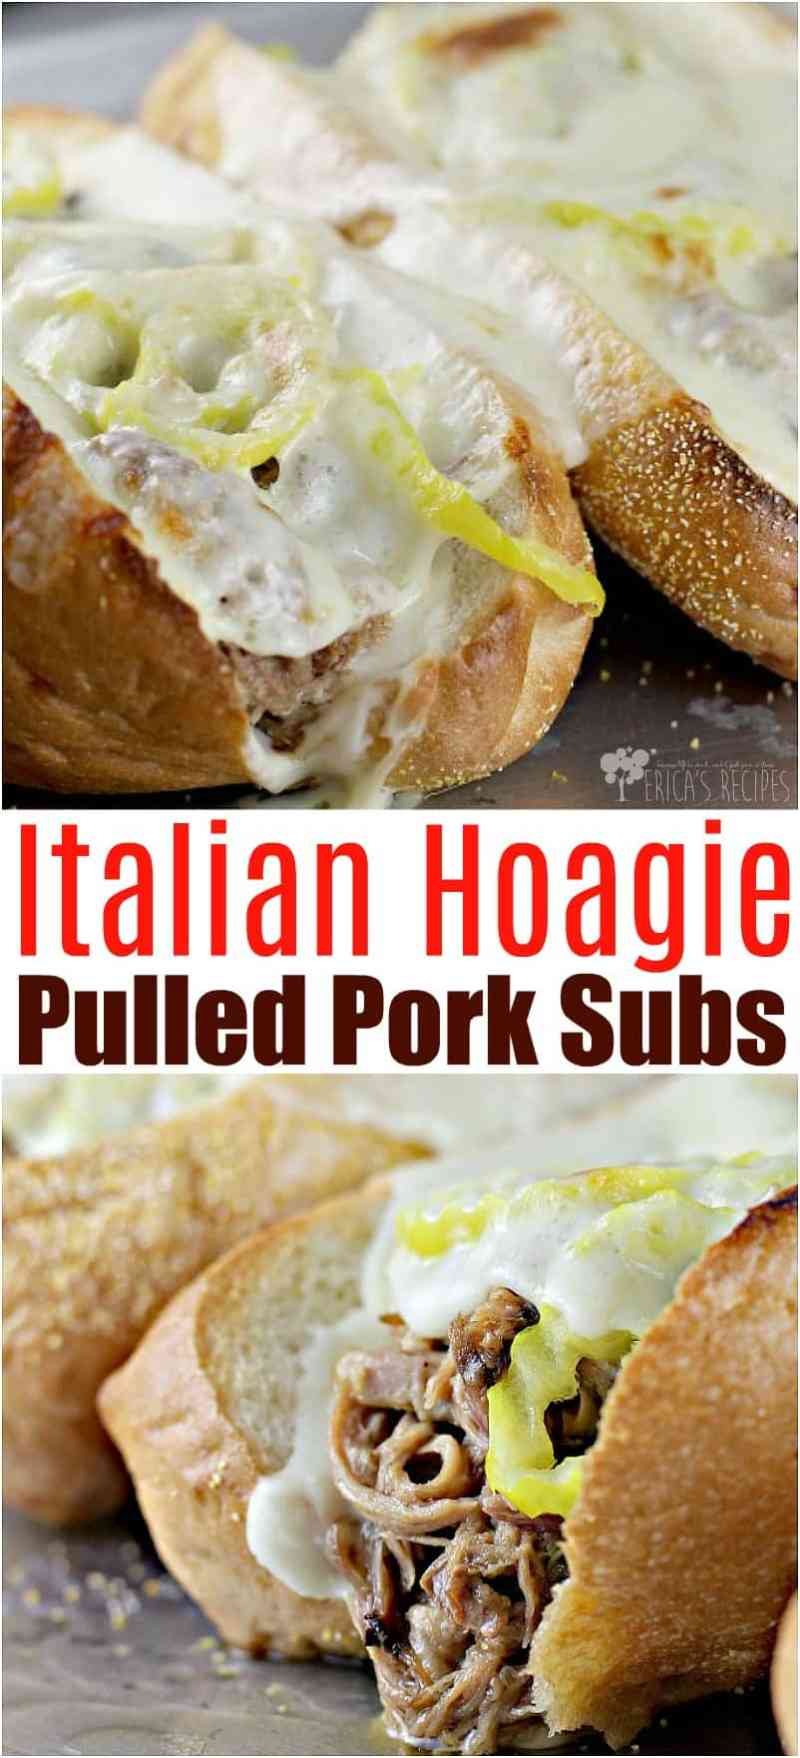 Italian Hoagie Pulled Pork Subs #recipe #pork #food #slowcooker #crockpot